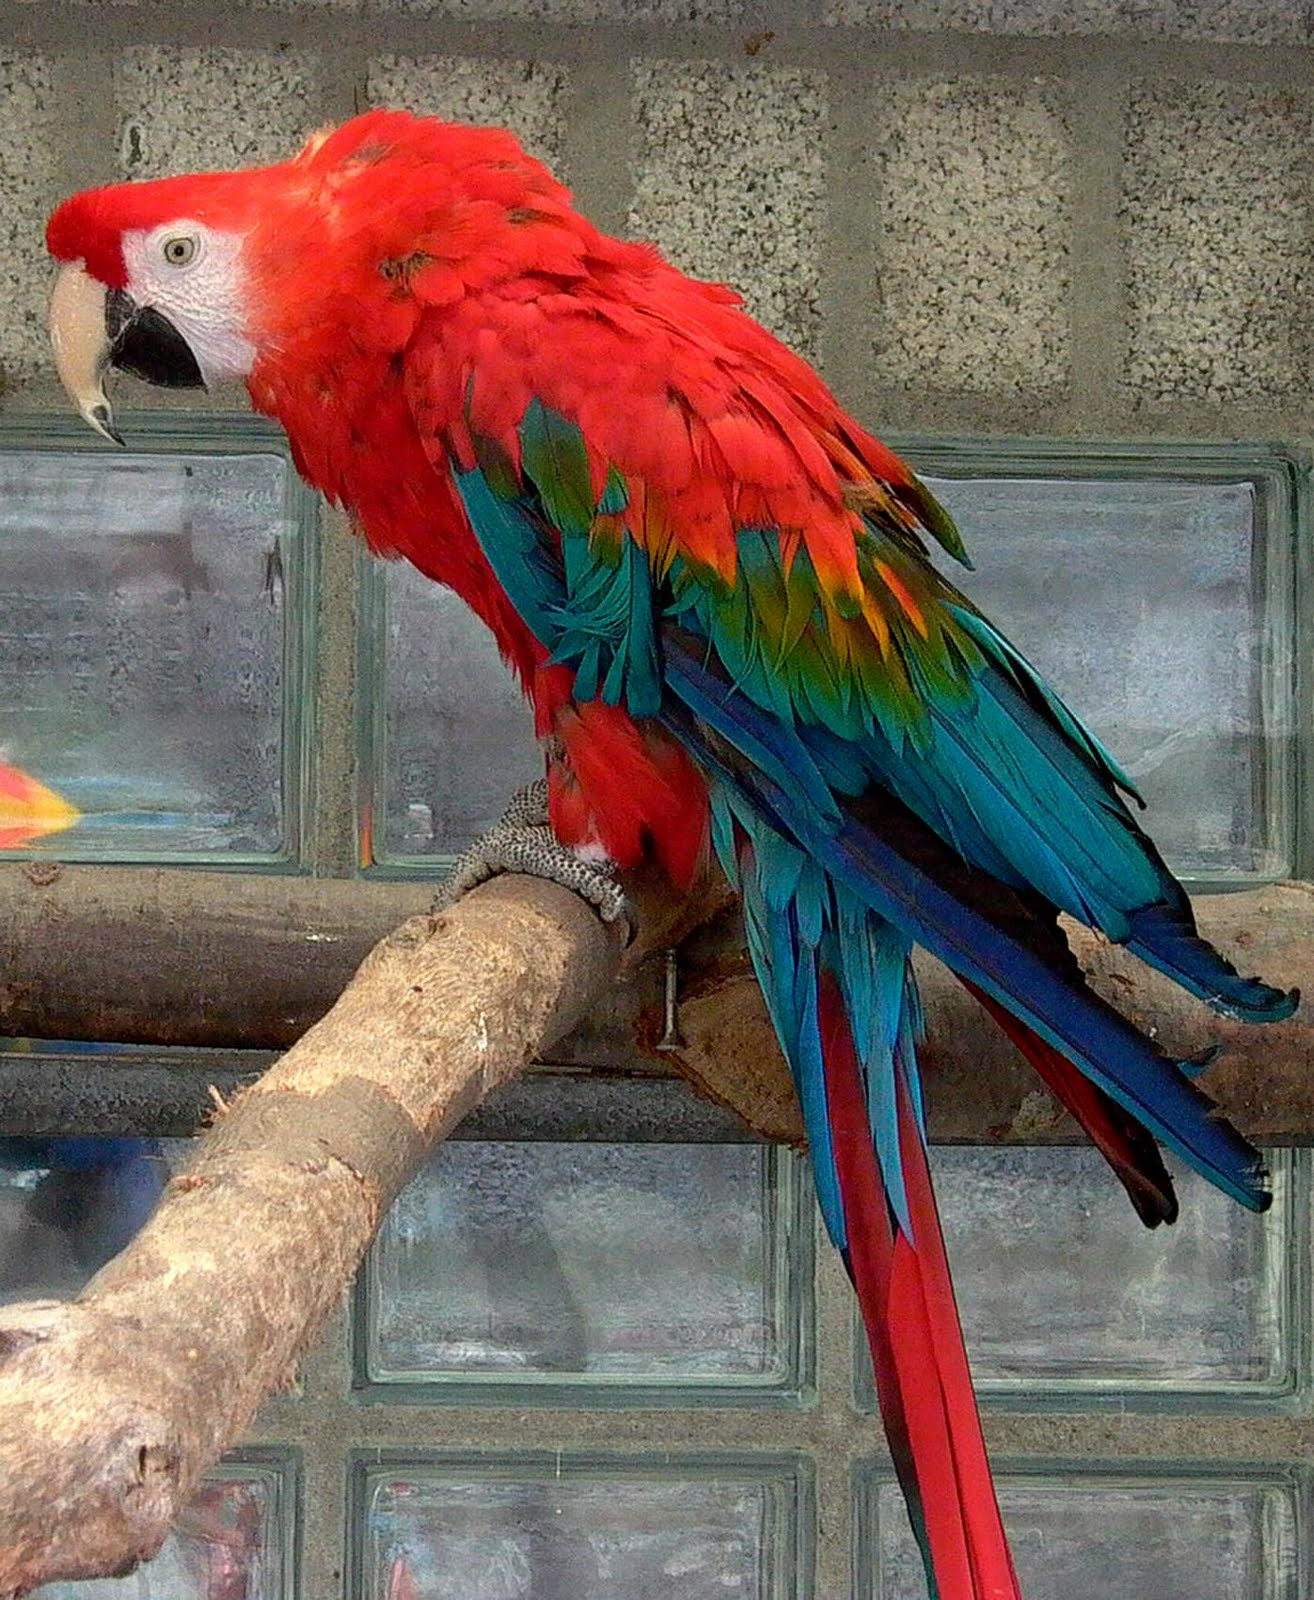 how to cut parrot wings